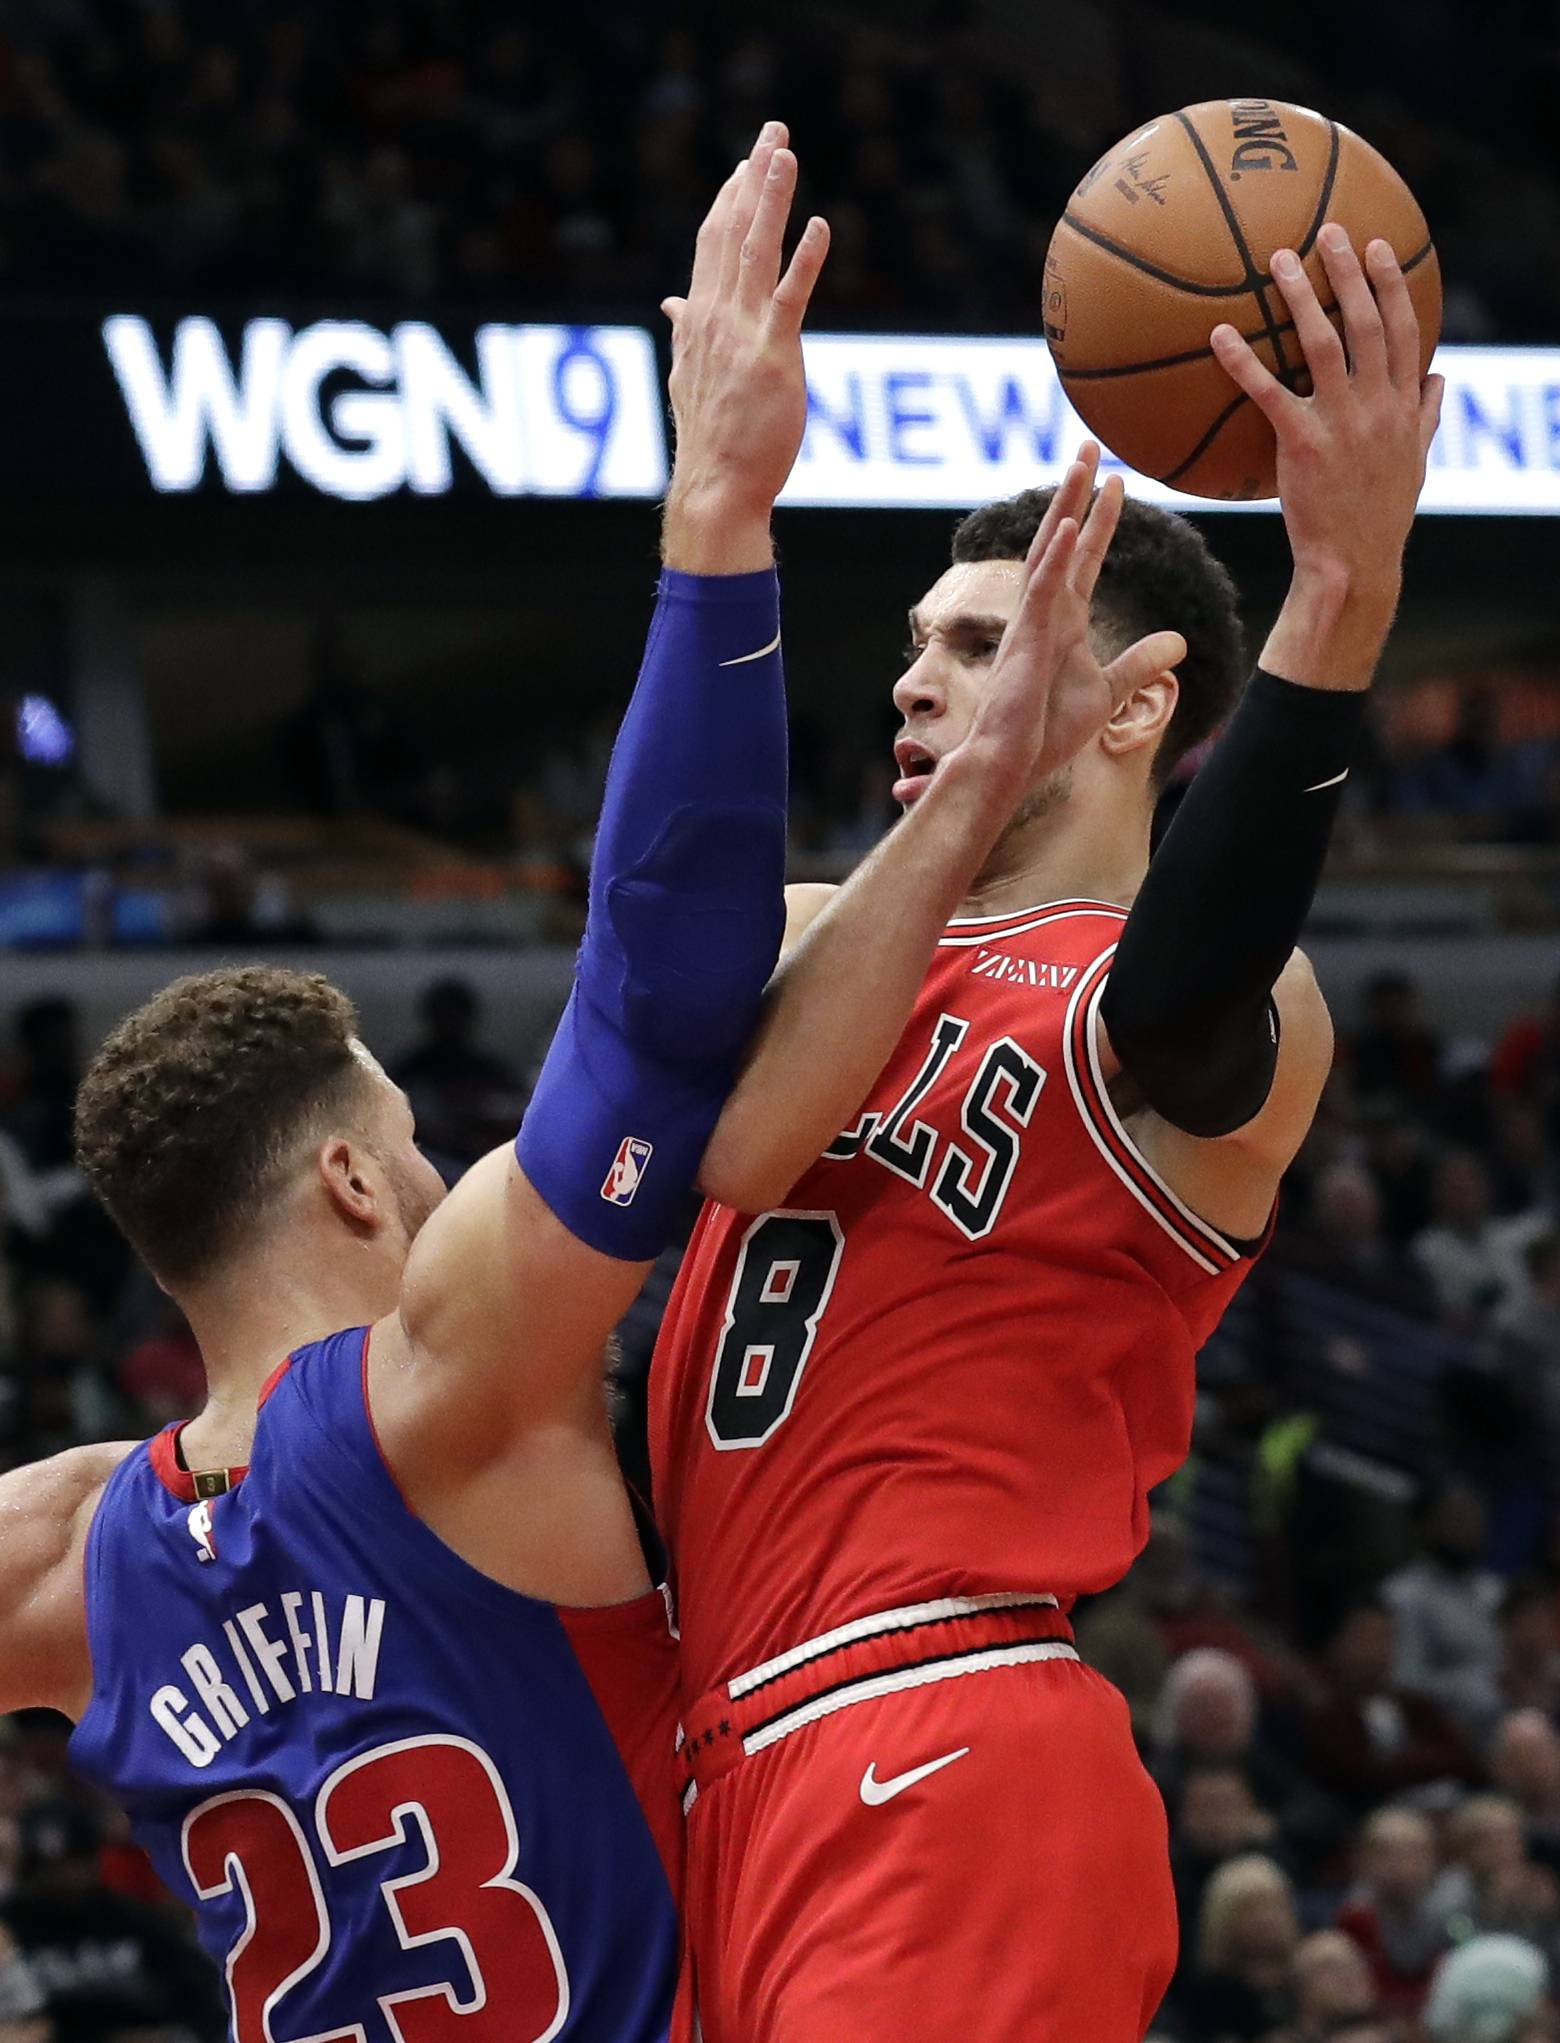 Chicago Bulls guard Zach LaVine, right, drives to the basket against Detroit Pistons forward Blake Griffin during the second half of an NBA basketball game Saturday, Oct. 20, 2018, in Chicago. The Pistons won 118-116. (AP Photo/Nam Y. Huh)